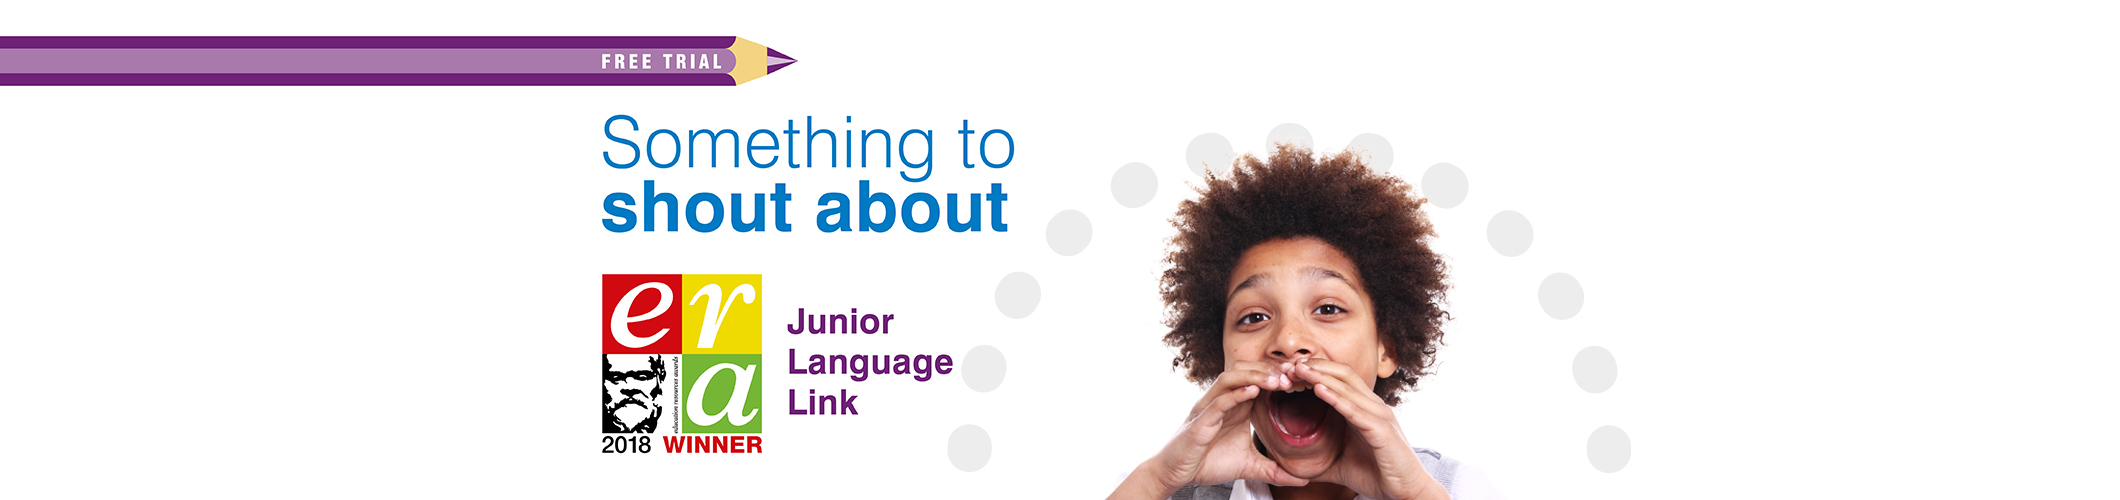 Something to shout about, Junior Language Link ERA Winner 2018